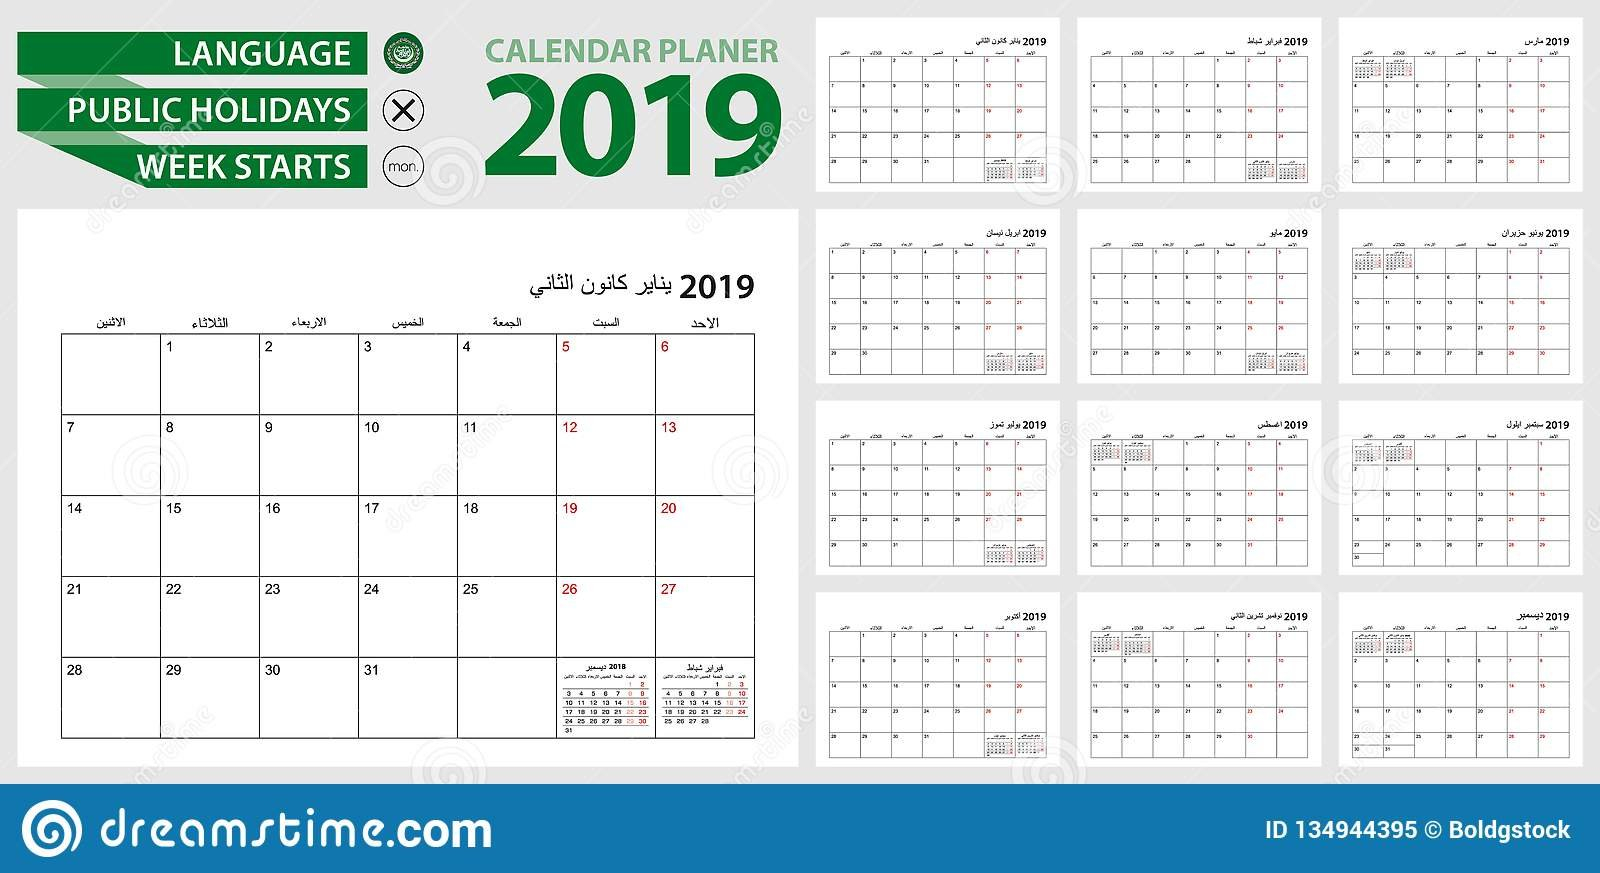 Arabic Calendar Planner For 2019. Arabic Language, Week Starts From Calendar 2019 Ksa